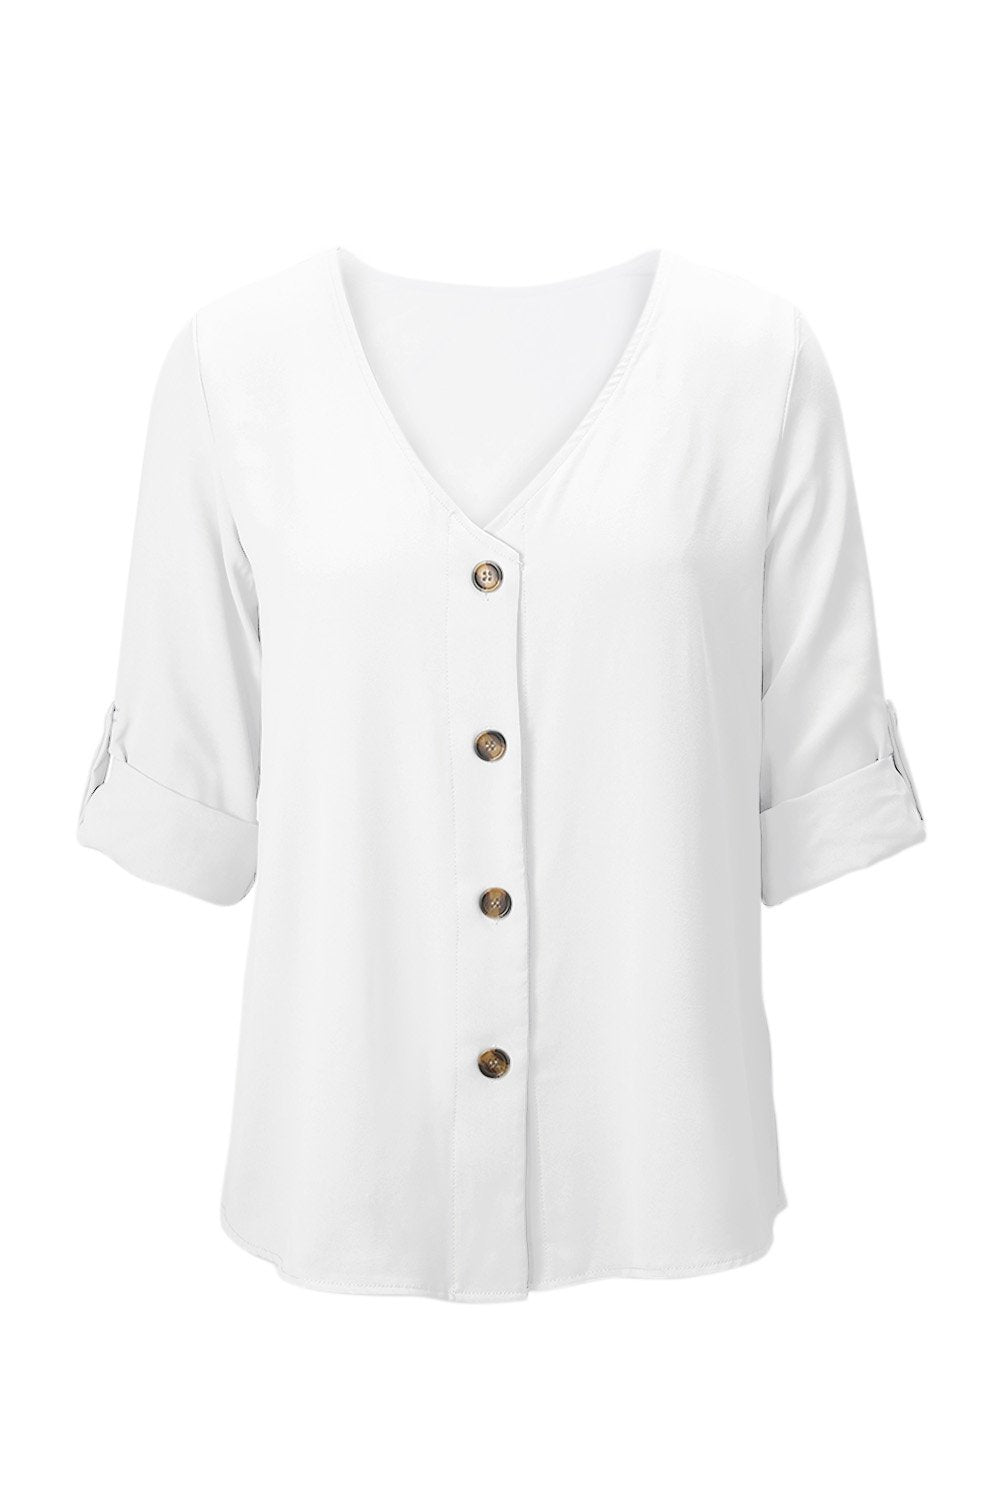 White Button Detail Roll up Long Sleeve Blouse